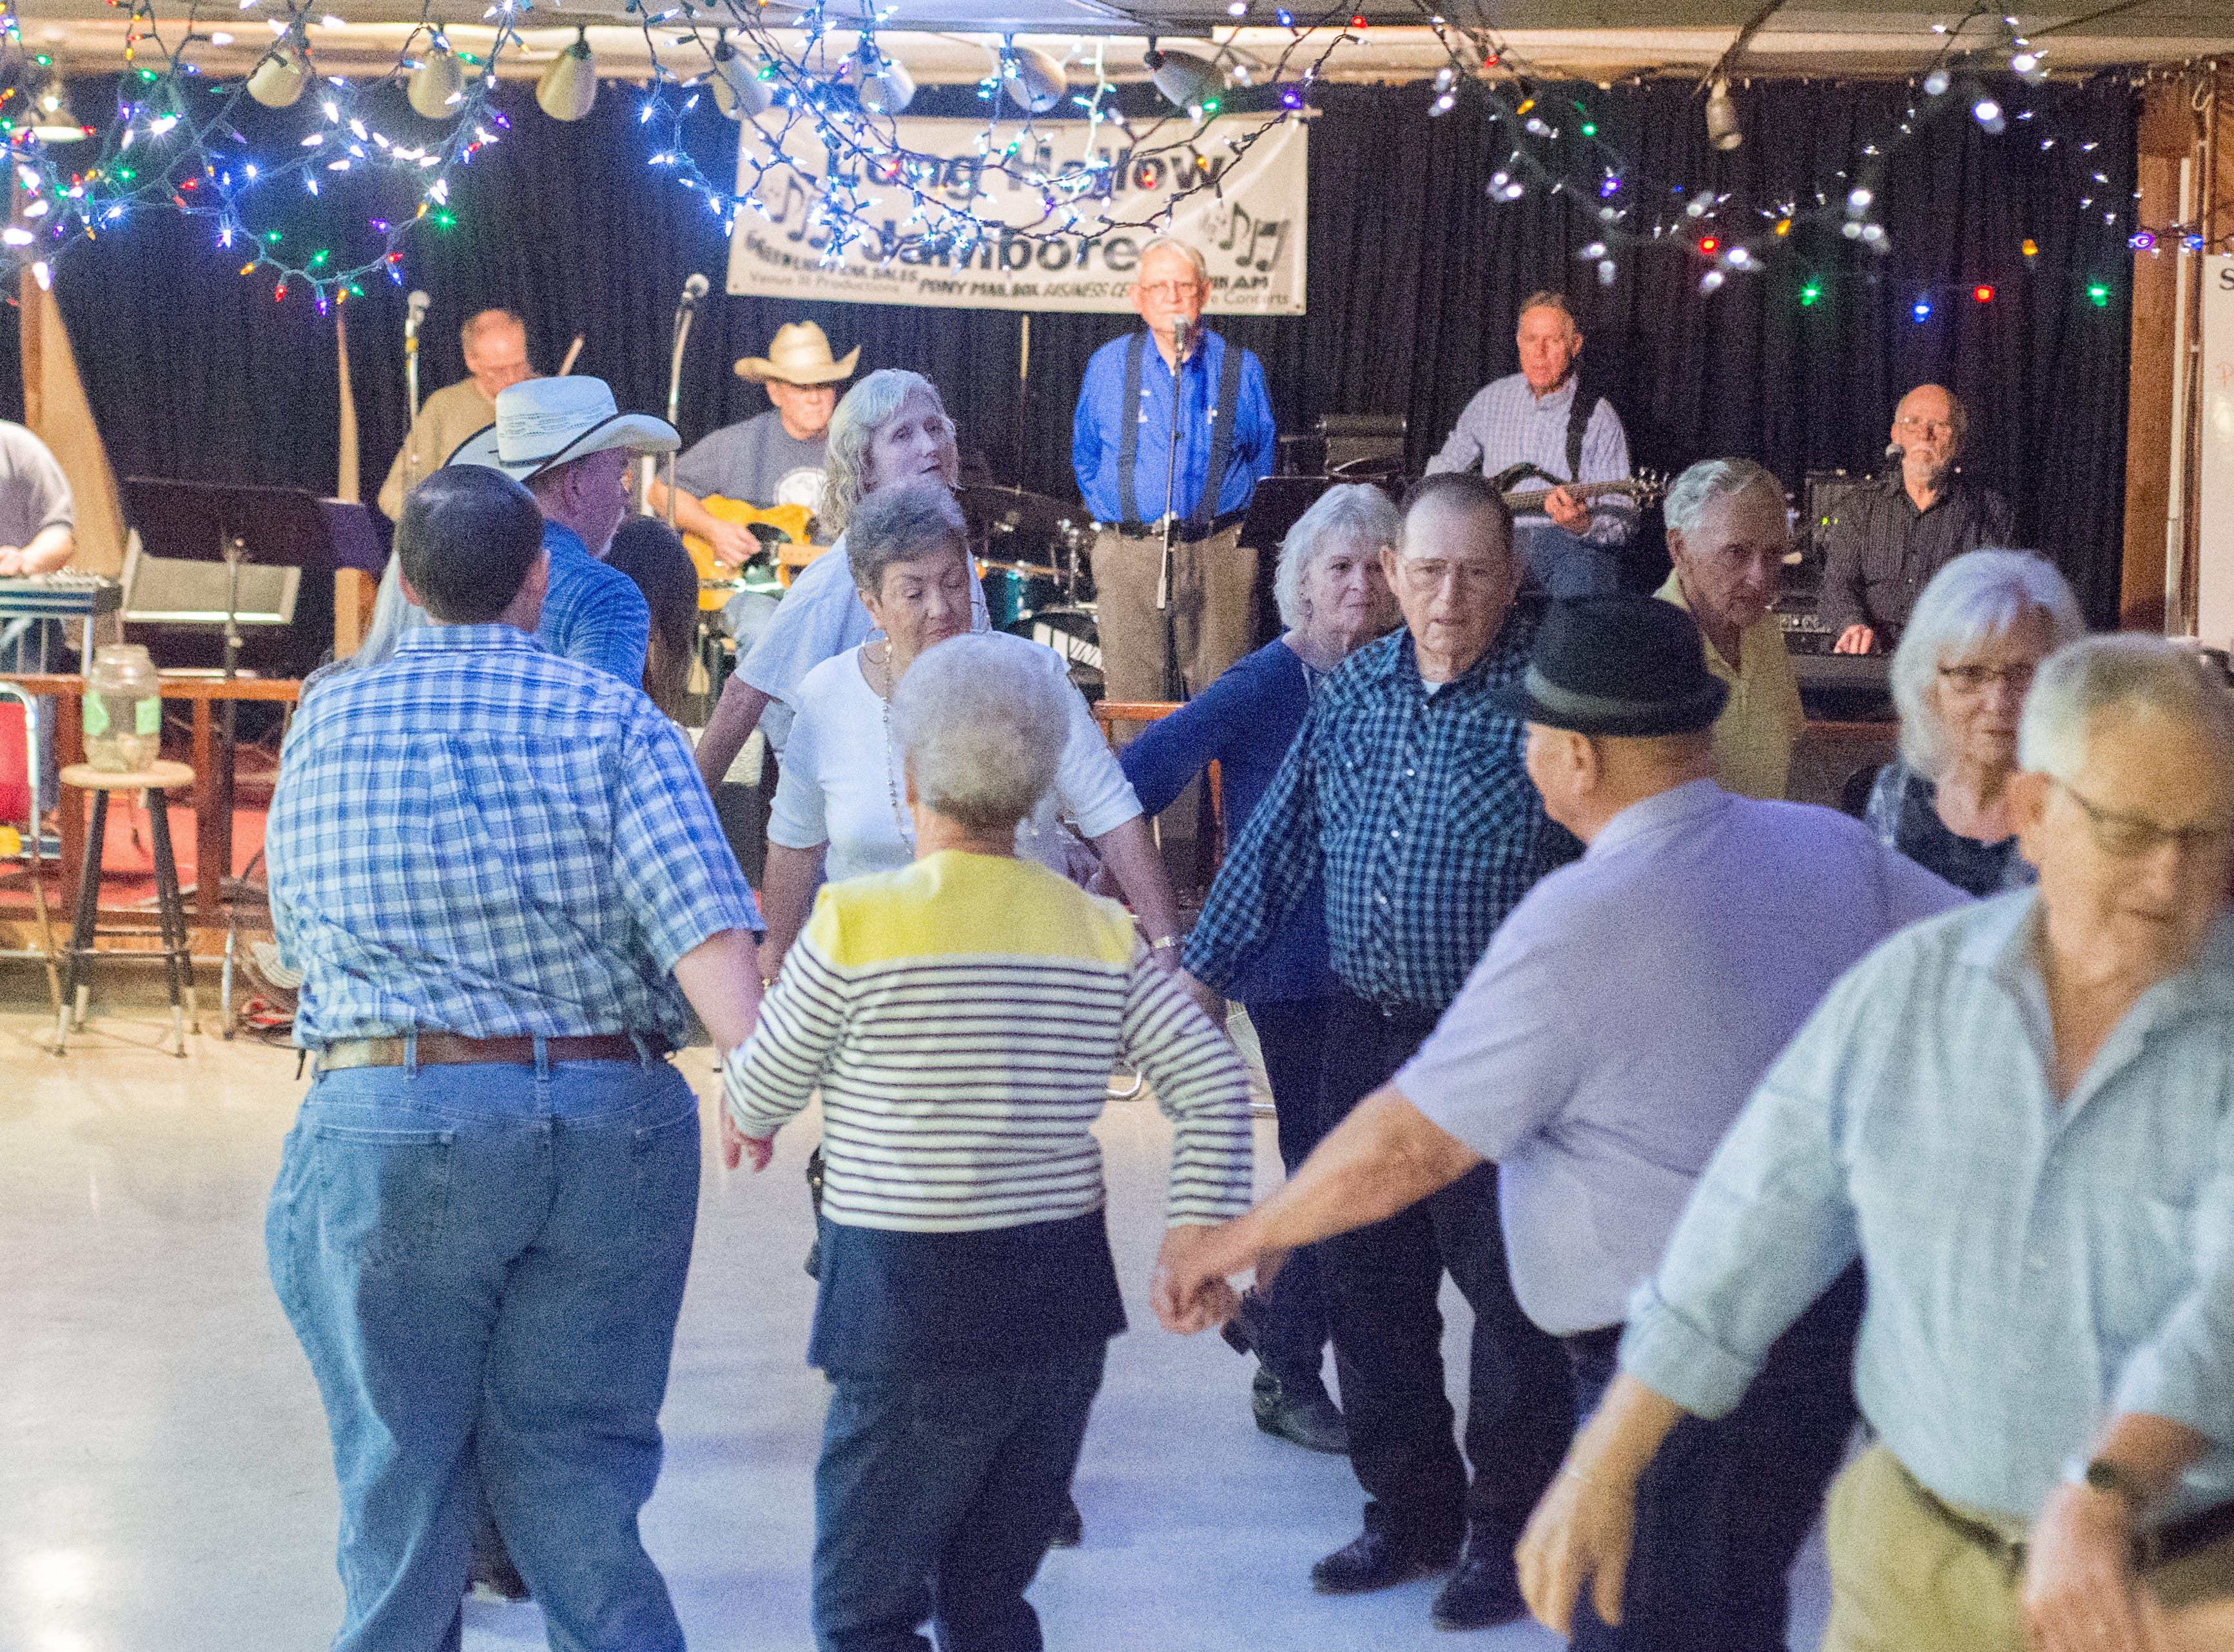 The Blue Creek Band keeps the crowd dancing at Long Hollow Jamboree in Goodlettsville on Saturday, April 7.